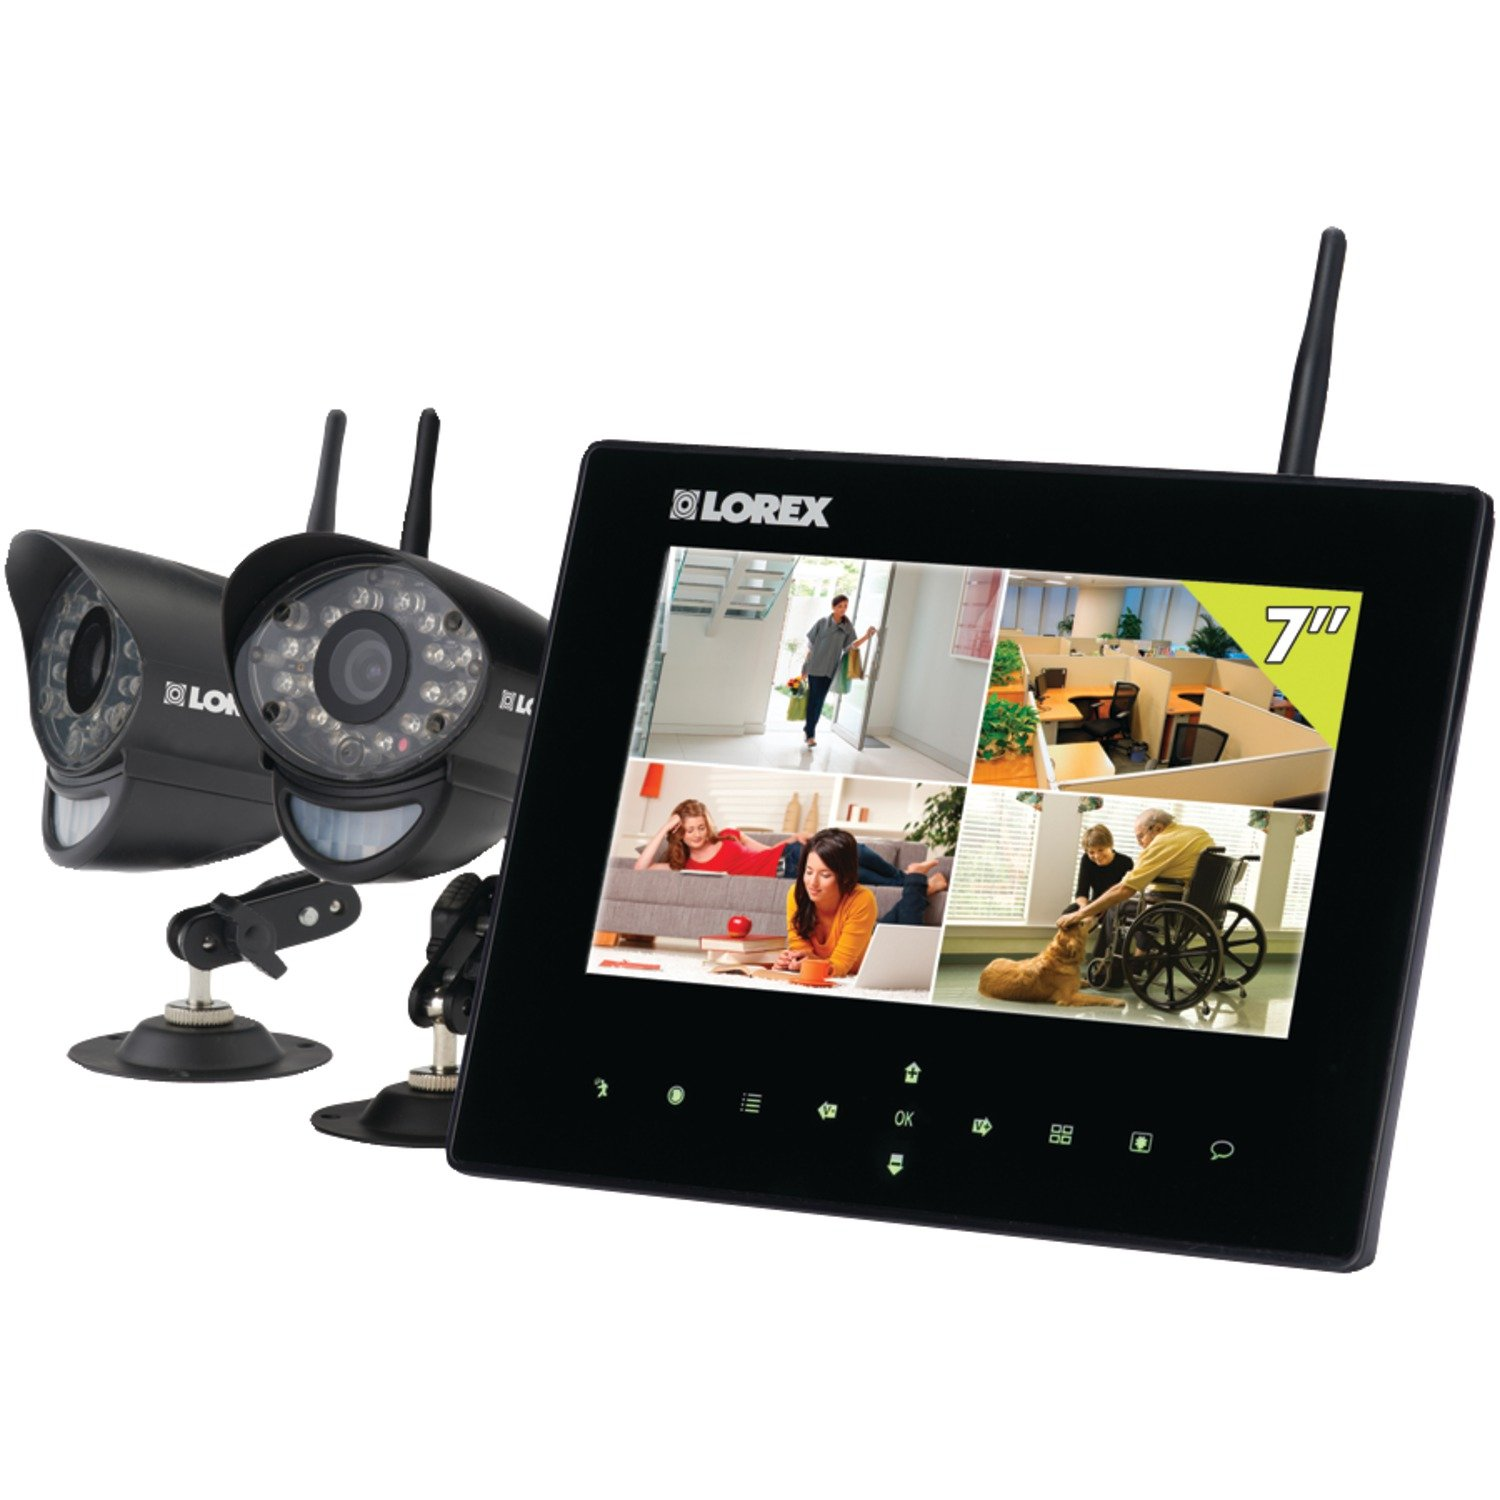 this kit offers a plugandplay home monitoring solution thatu0027s ideal for commercial and residential uses and can be viewed directly on the included tablet